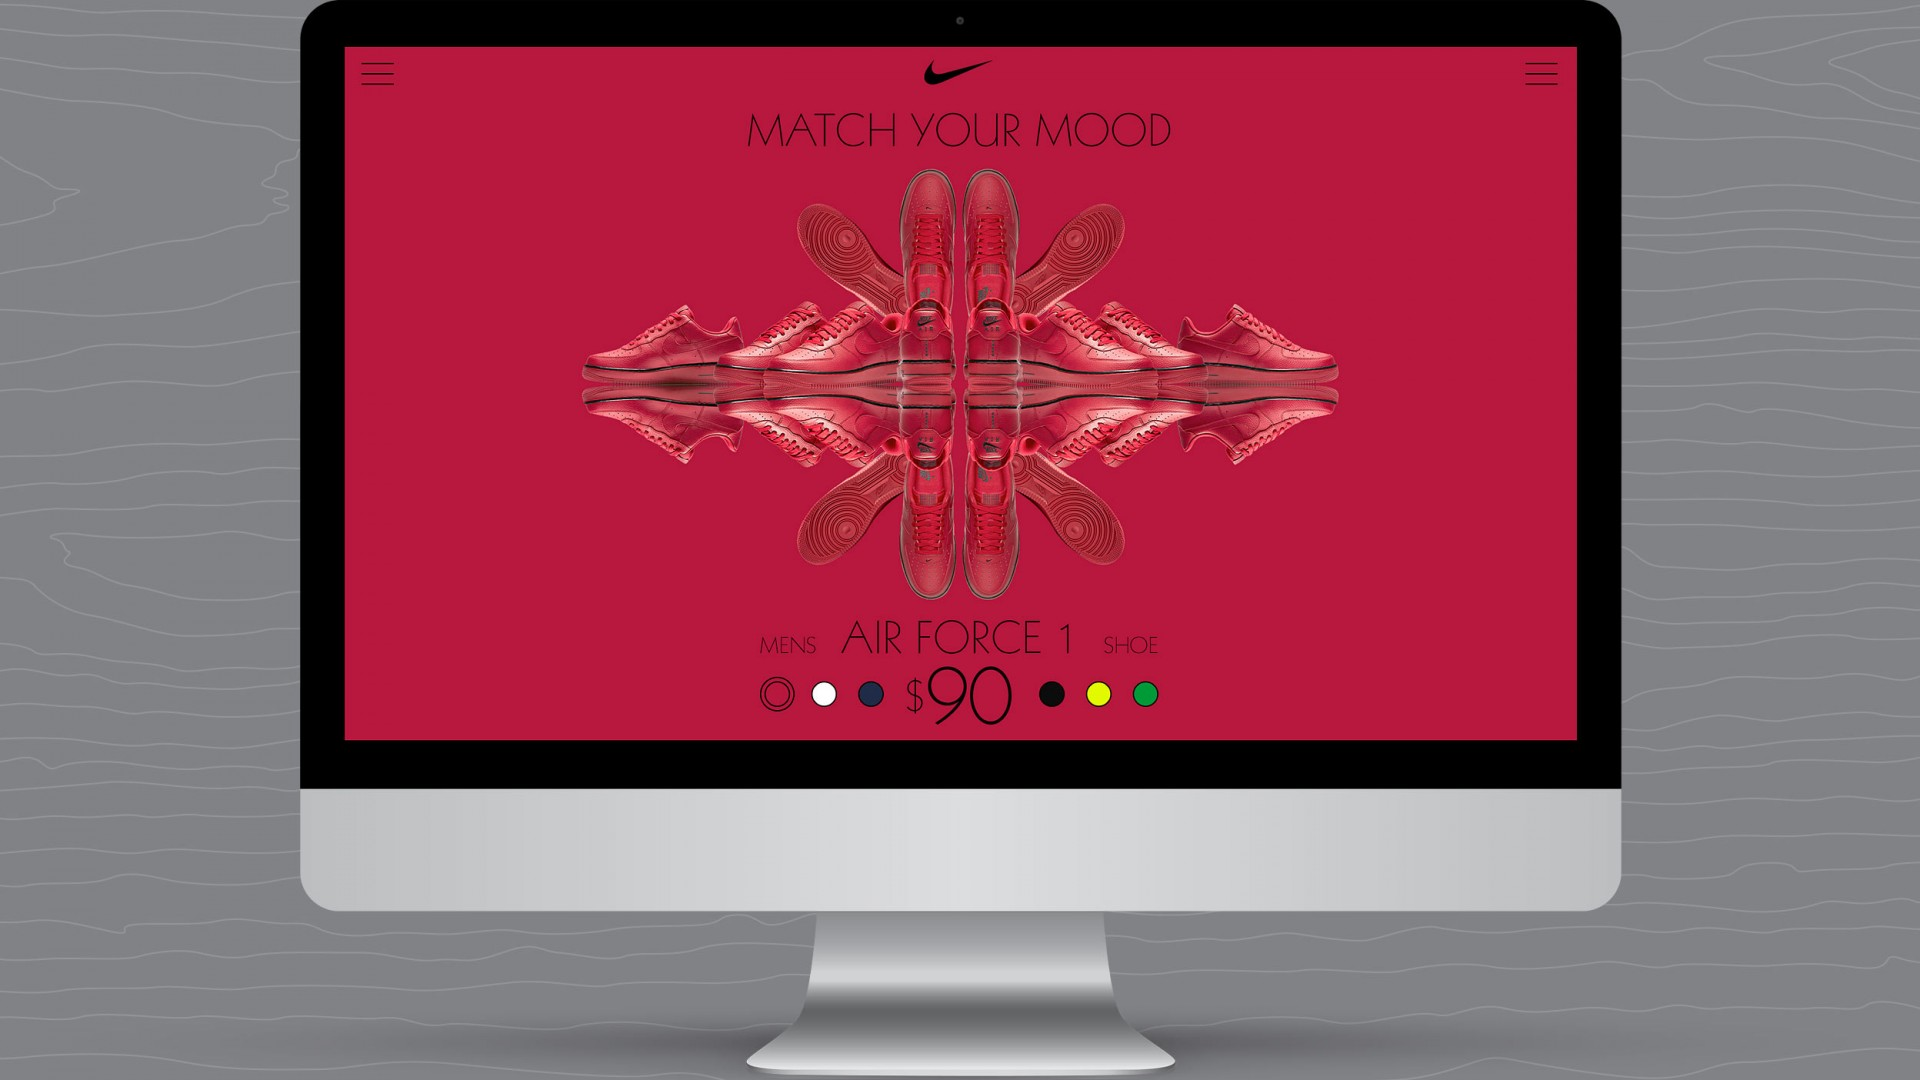 Match Your Mood, Nike UX/UI, desktop view red shoe view.